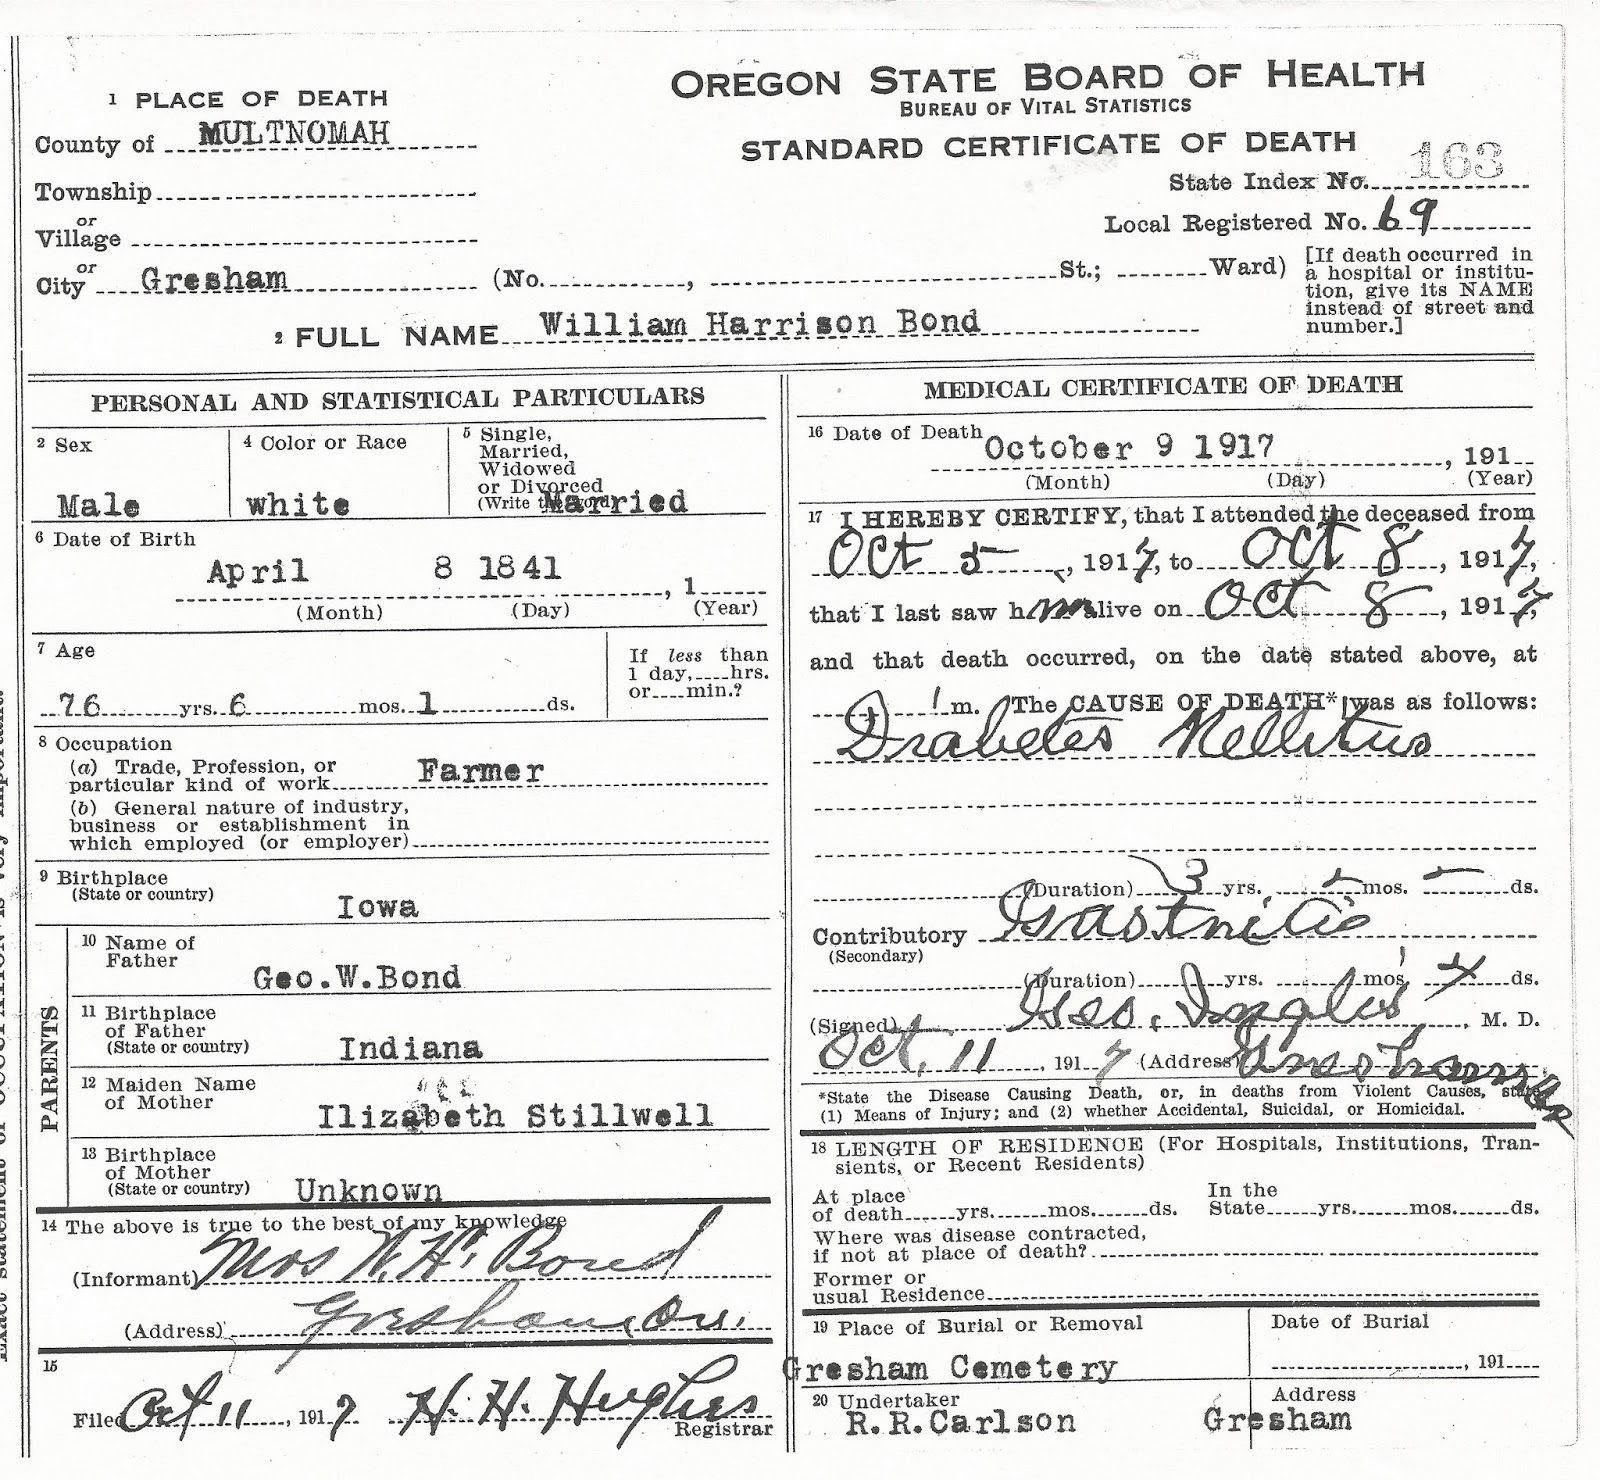 Joannes genealogy research 2017 he moved away and died in new york state so of course he doesnt have an oregon death certificate 1betcityfo Choice Image